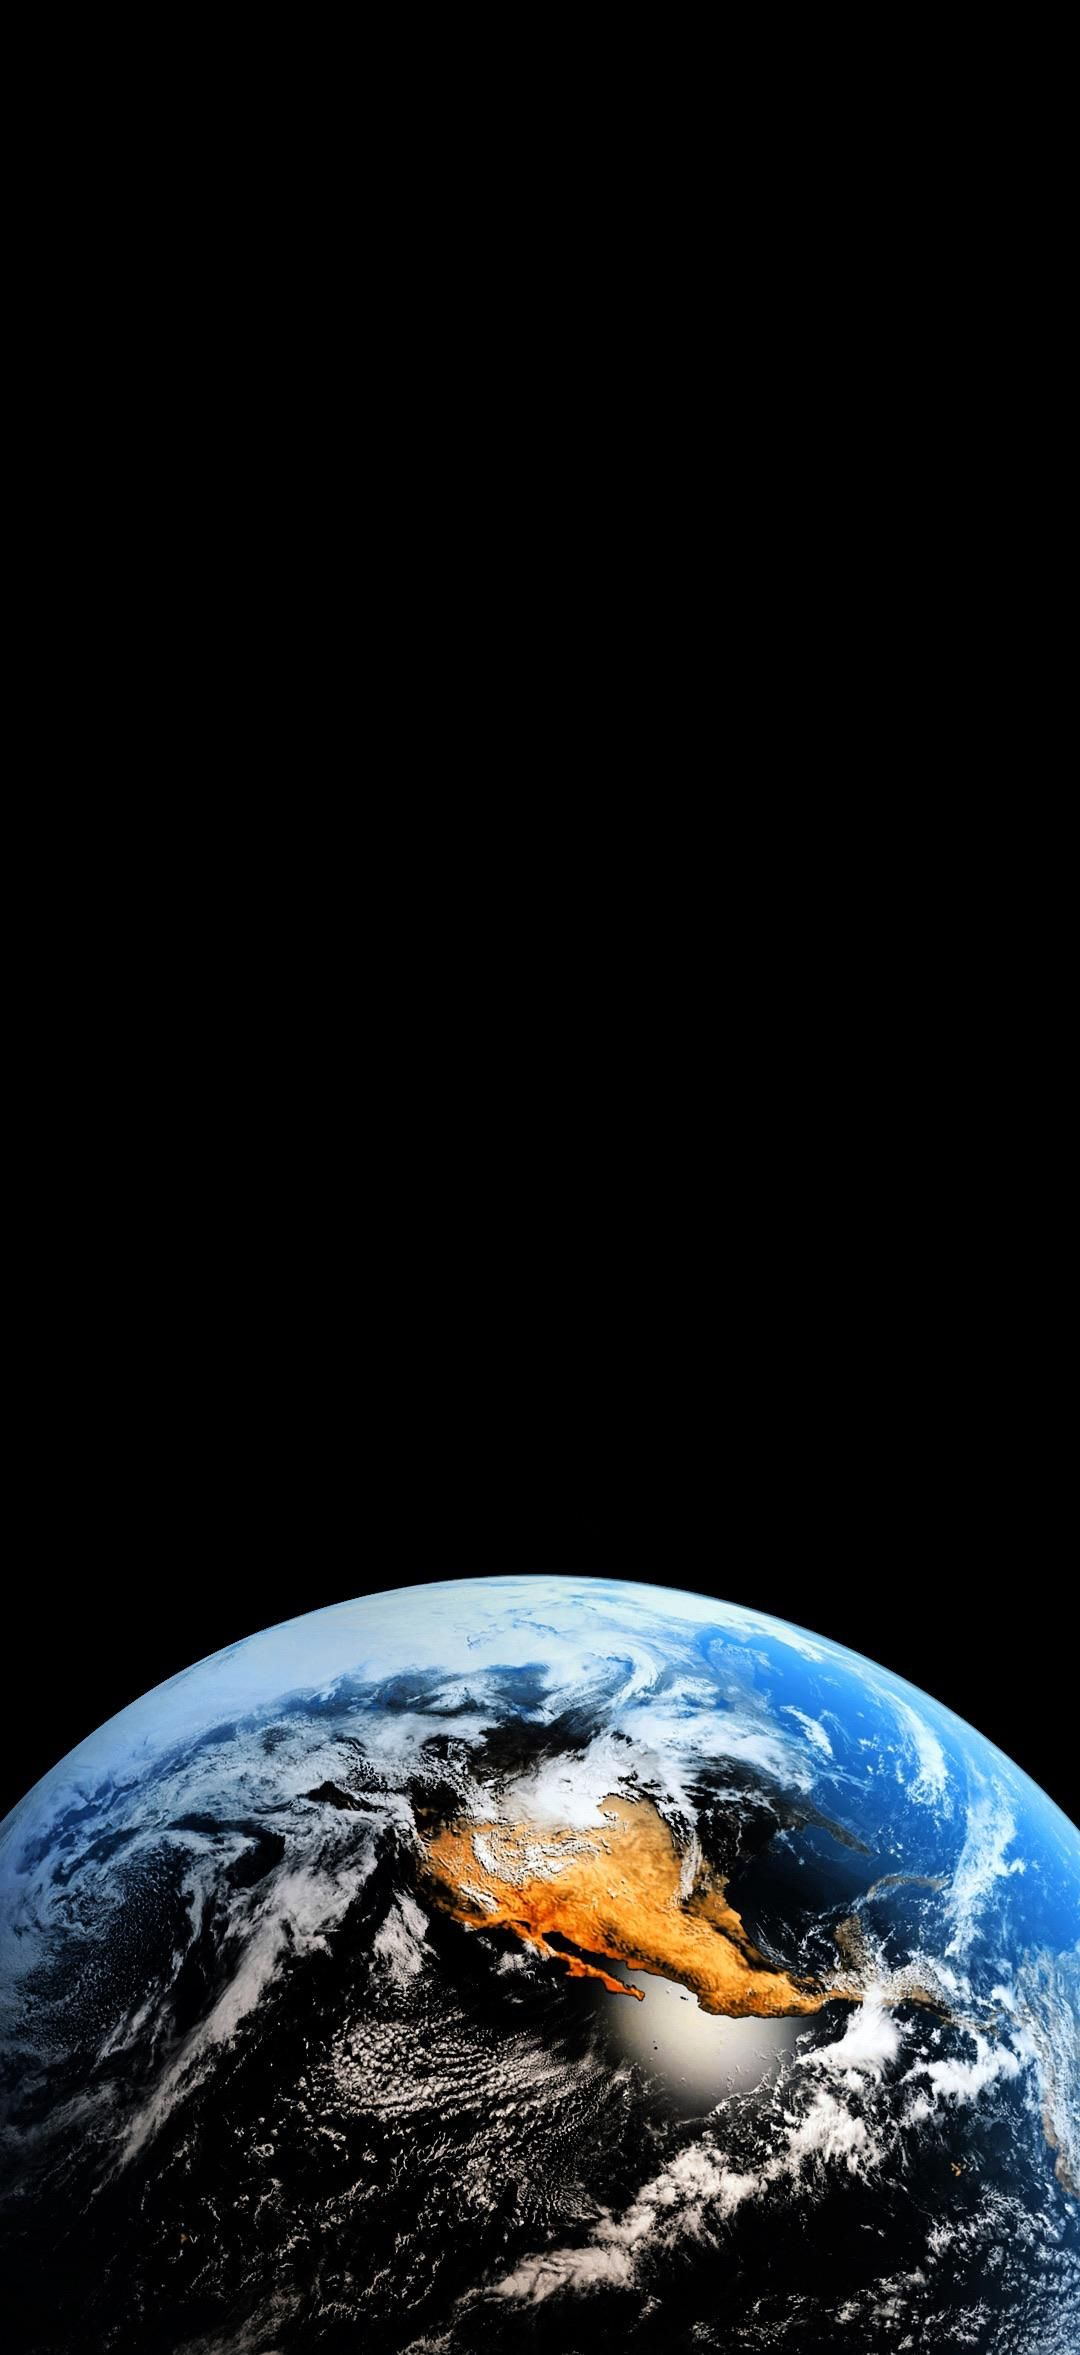 Earth Amoled Full Res Link In Comments Iphone Wallpaper Earth Wallpaper Wa Best Iphone Wallpapers